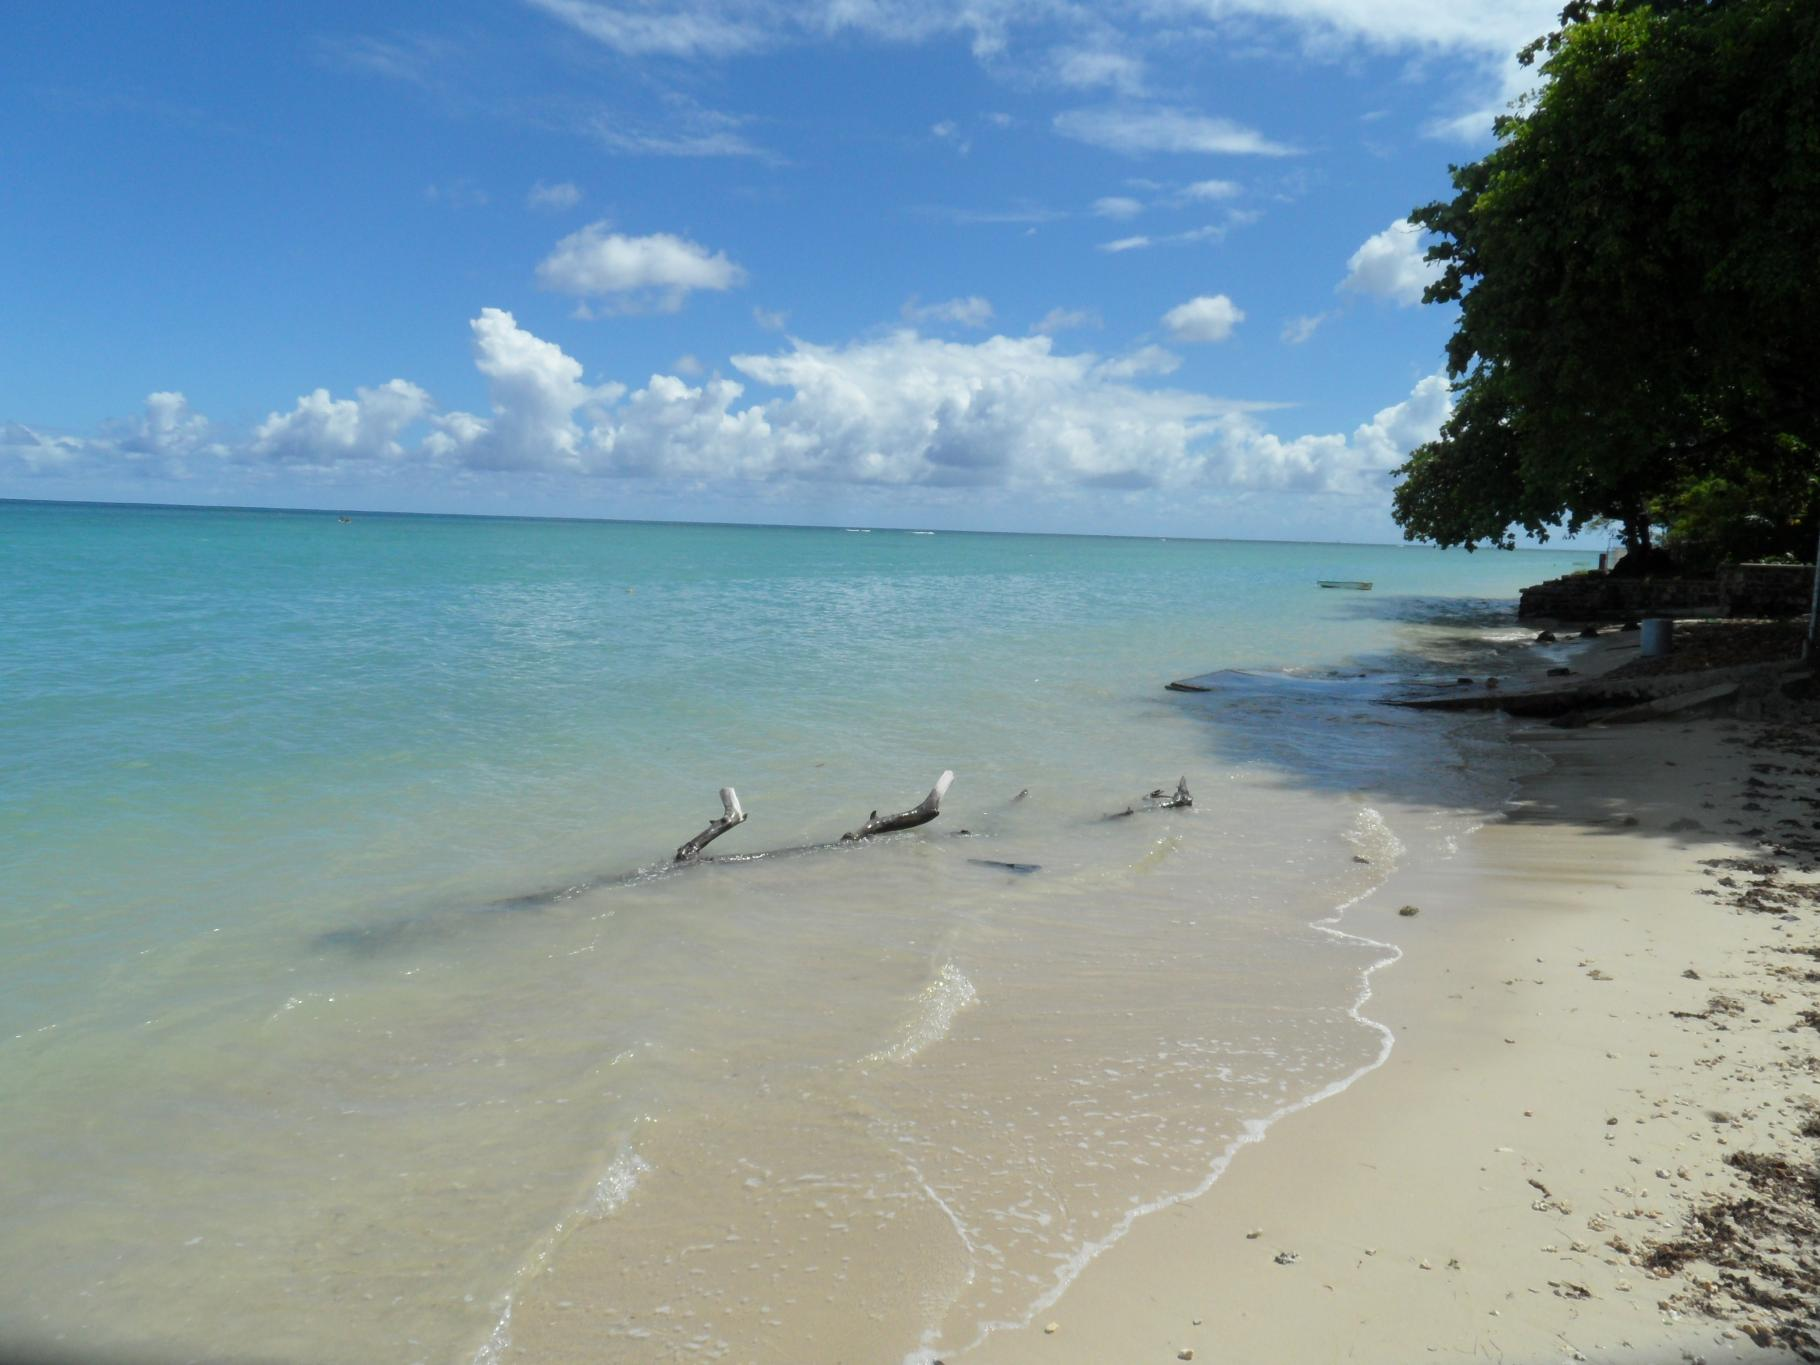 FOR SALE – Freehold beachfront land of 381 toises in Baie du Tombeau.